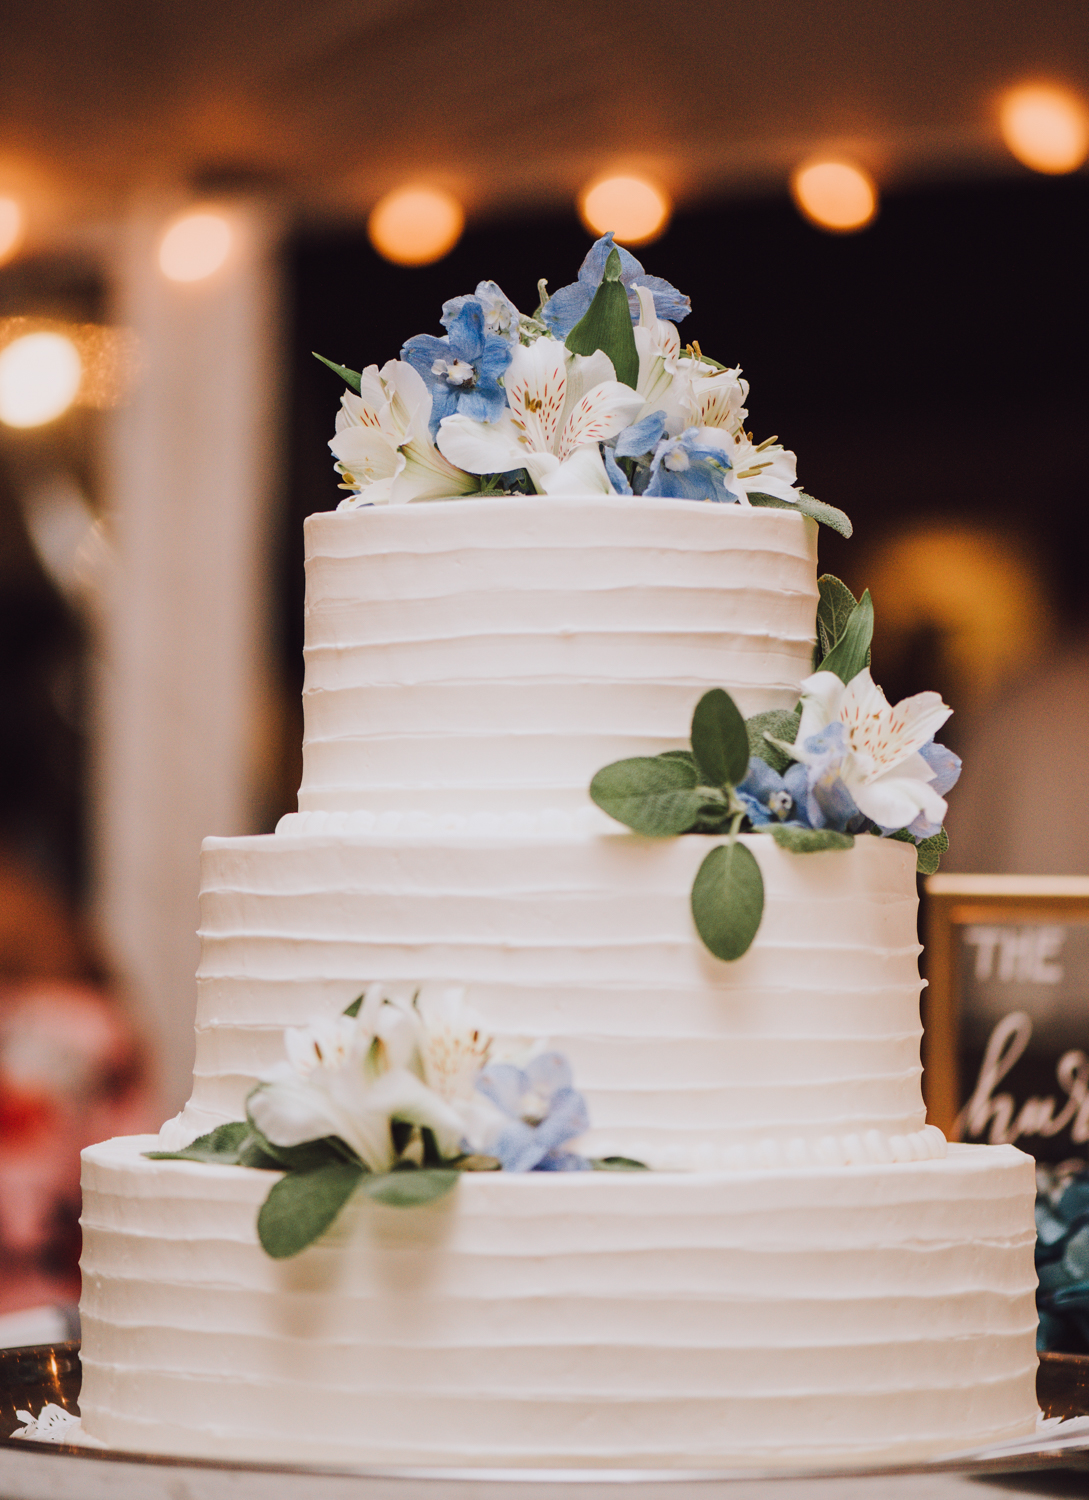 maureen_evan_wedding_wedding_cake_black_dog_bakery_marthas_vineyard-4316.jpg